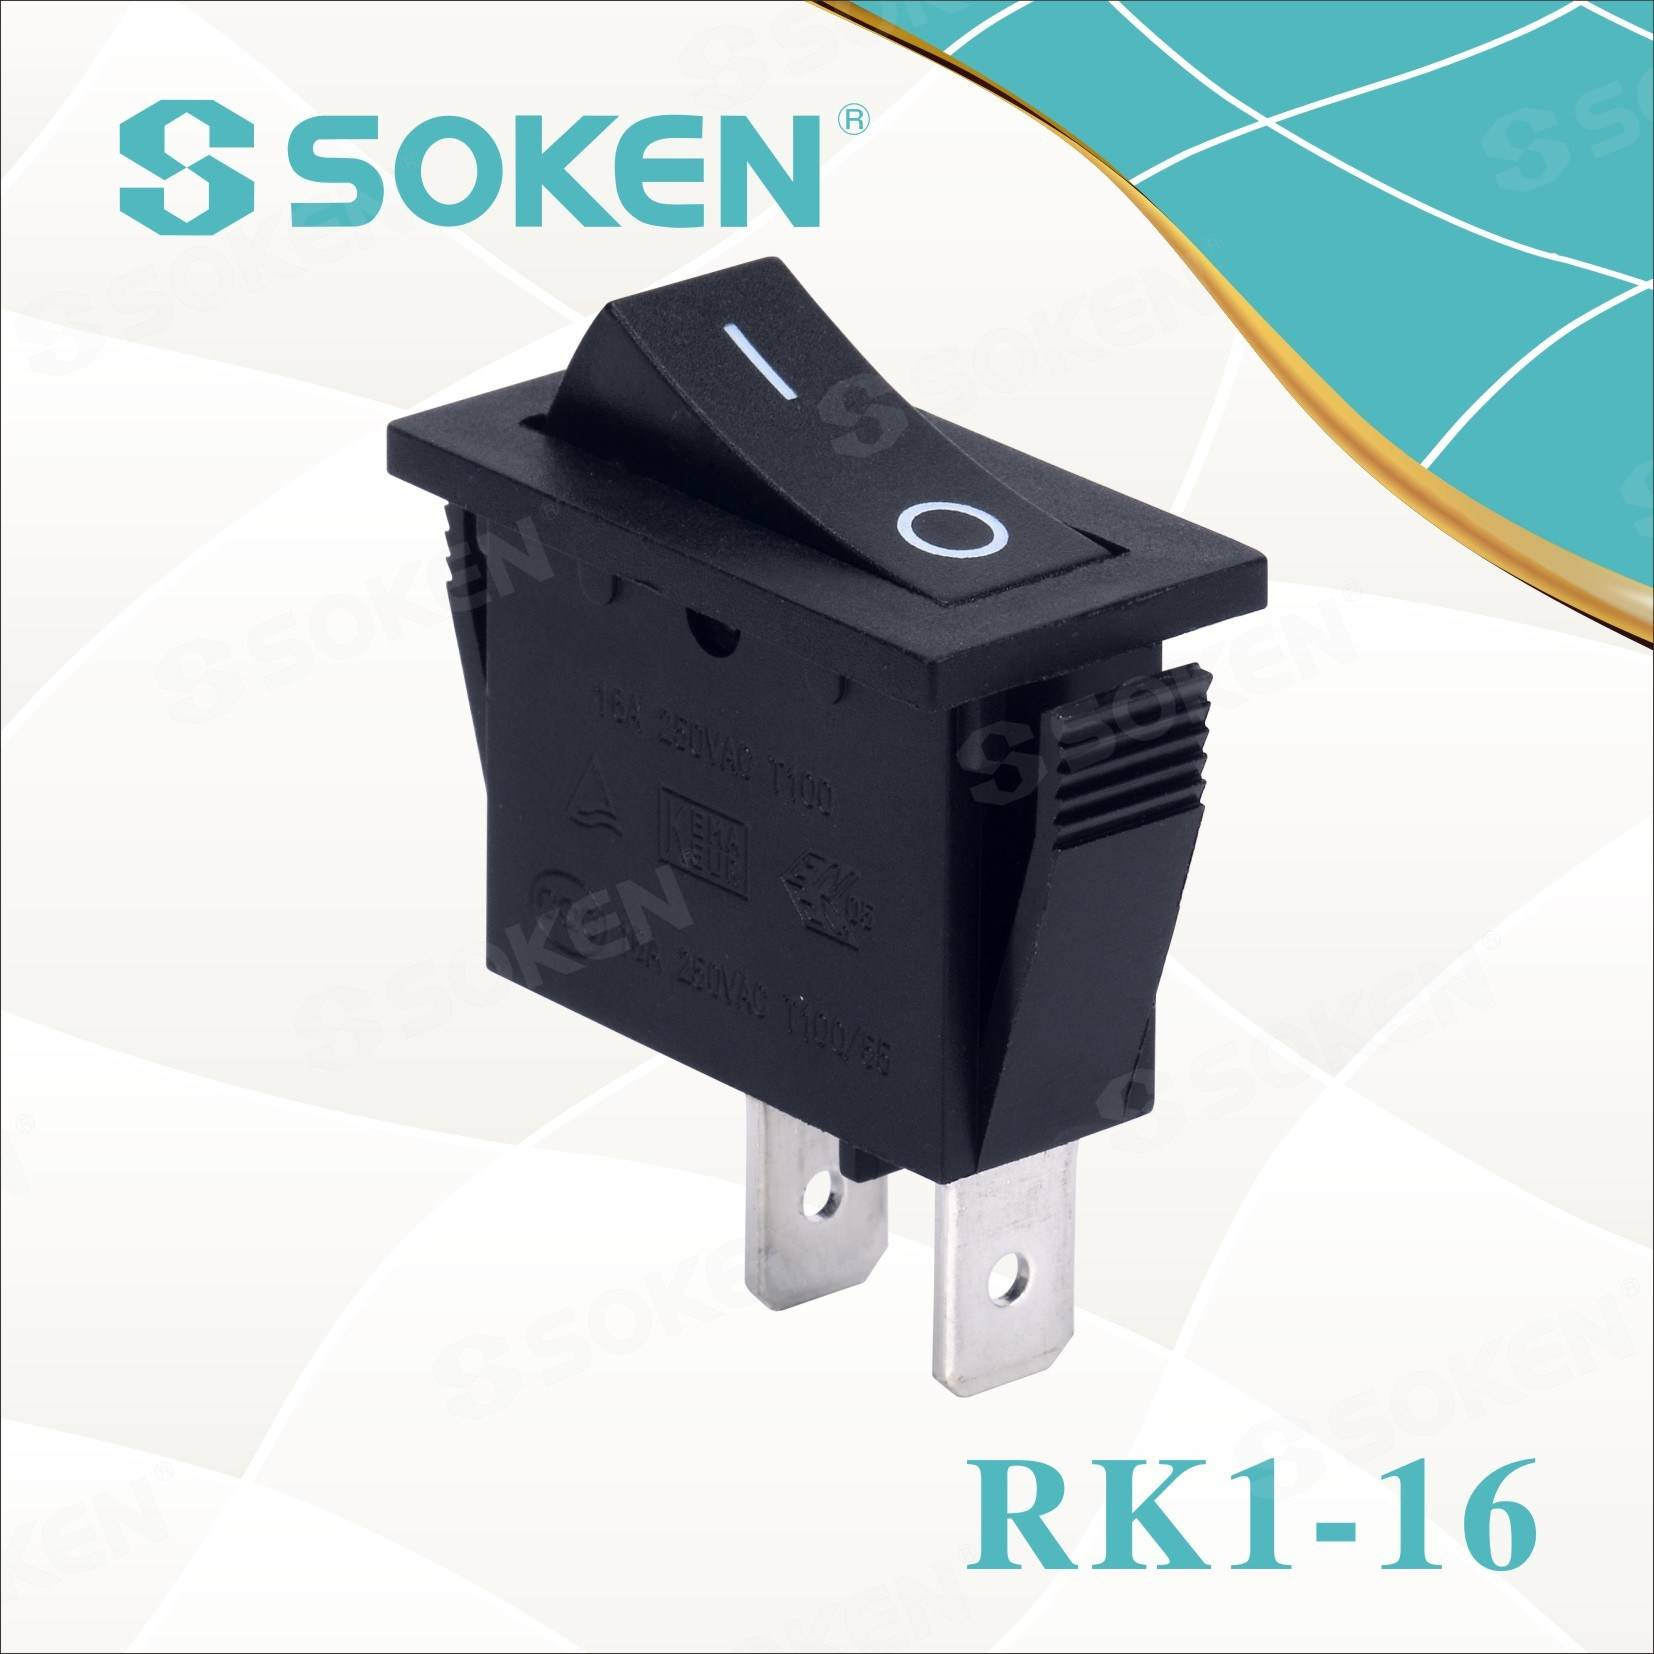 Soken Rk1-16 1X1 B / R ar Switch Rocker off